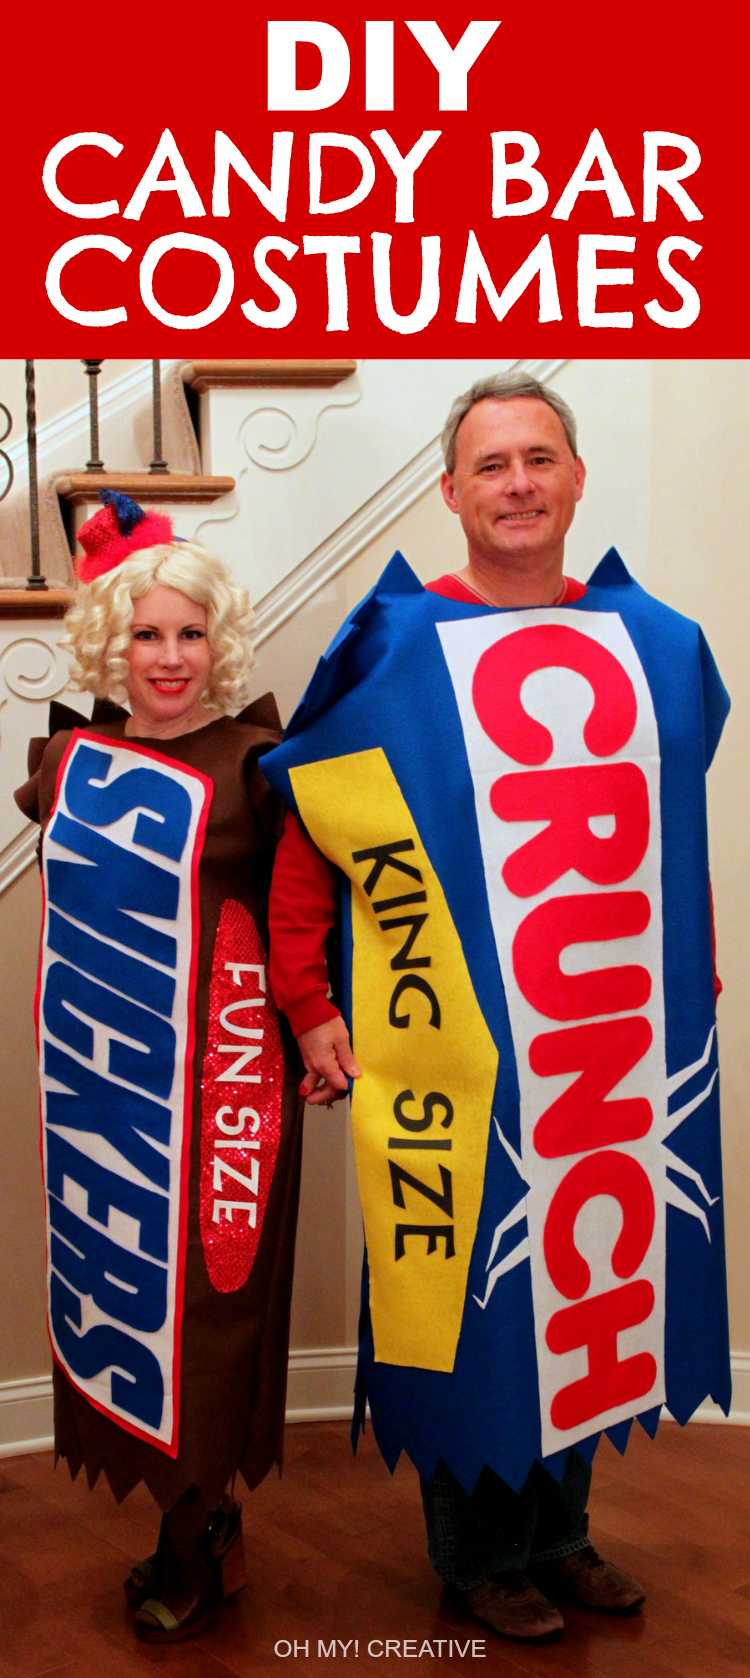 Candy Bar Costumes by Oh My! Creative